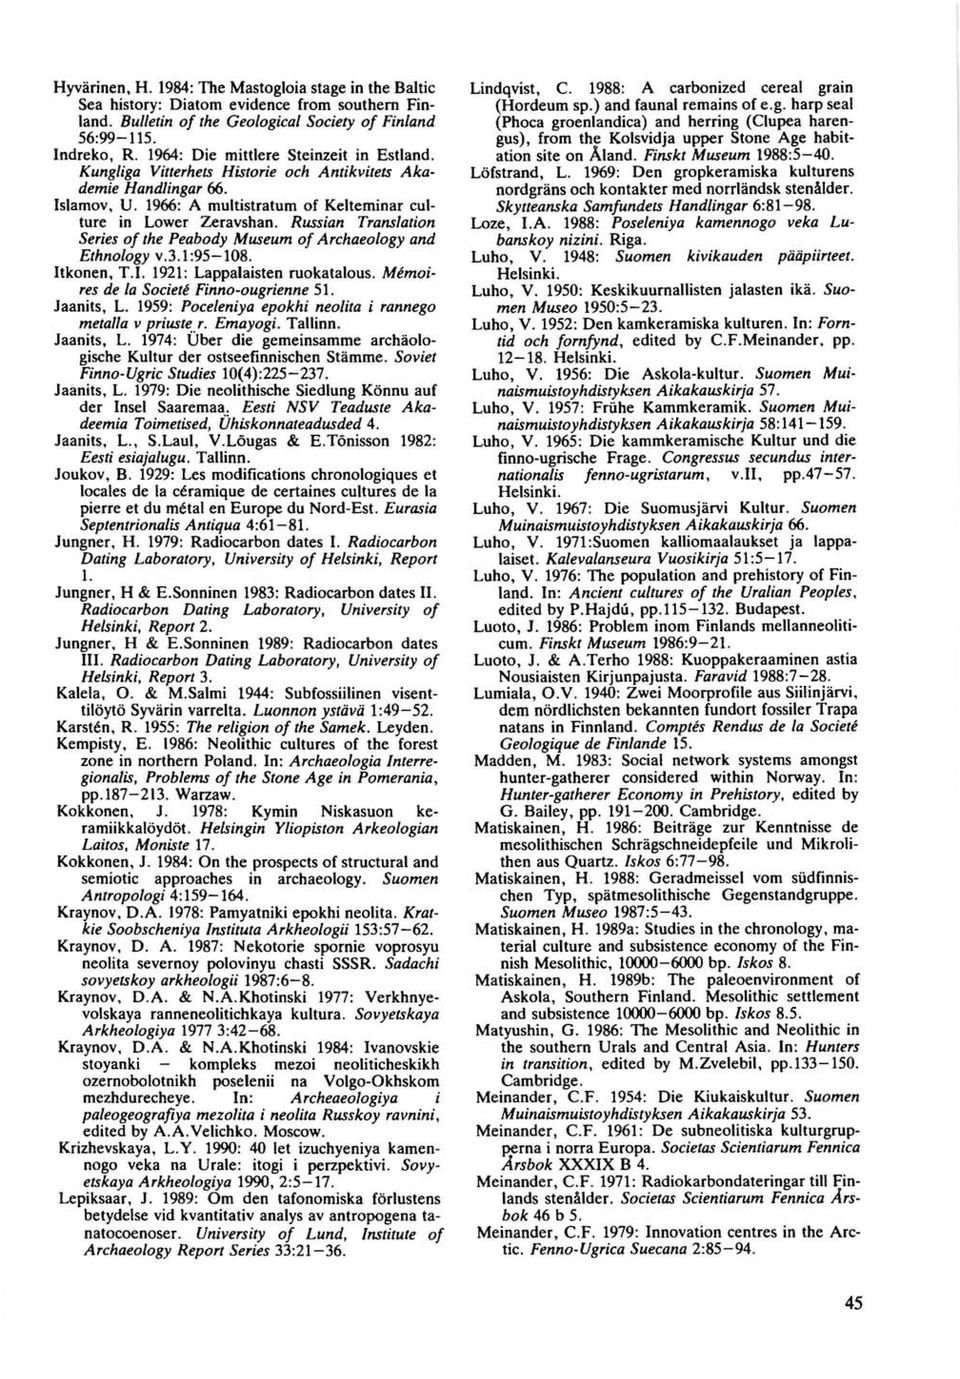 Russian Translation Series of the Peabody Museum of Archaeology and Ethnology v.3.1:95-108. Itkonen, T.I. 1921: Lappalaisten ruokatalous. Memoires de la Societe Finno-ougrienne 51. Jaanits, L.